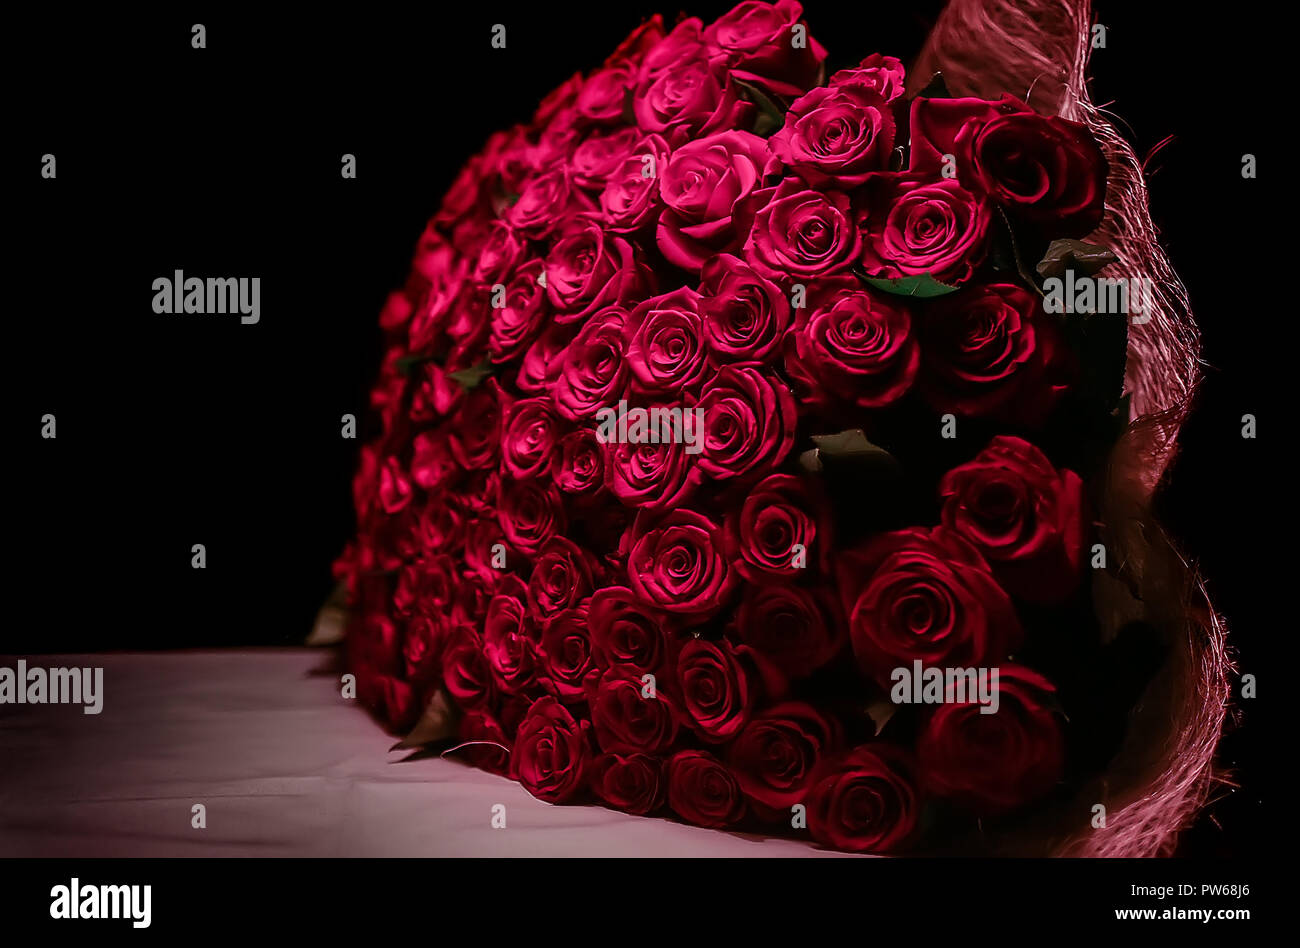 Image De Rose Big Bouquet Of Red Roses On A Dark Background Stock Photo